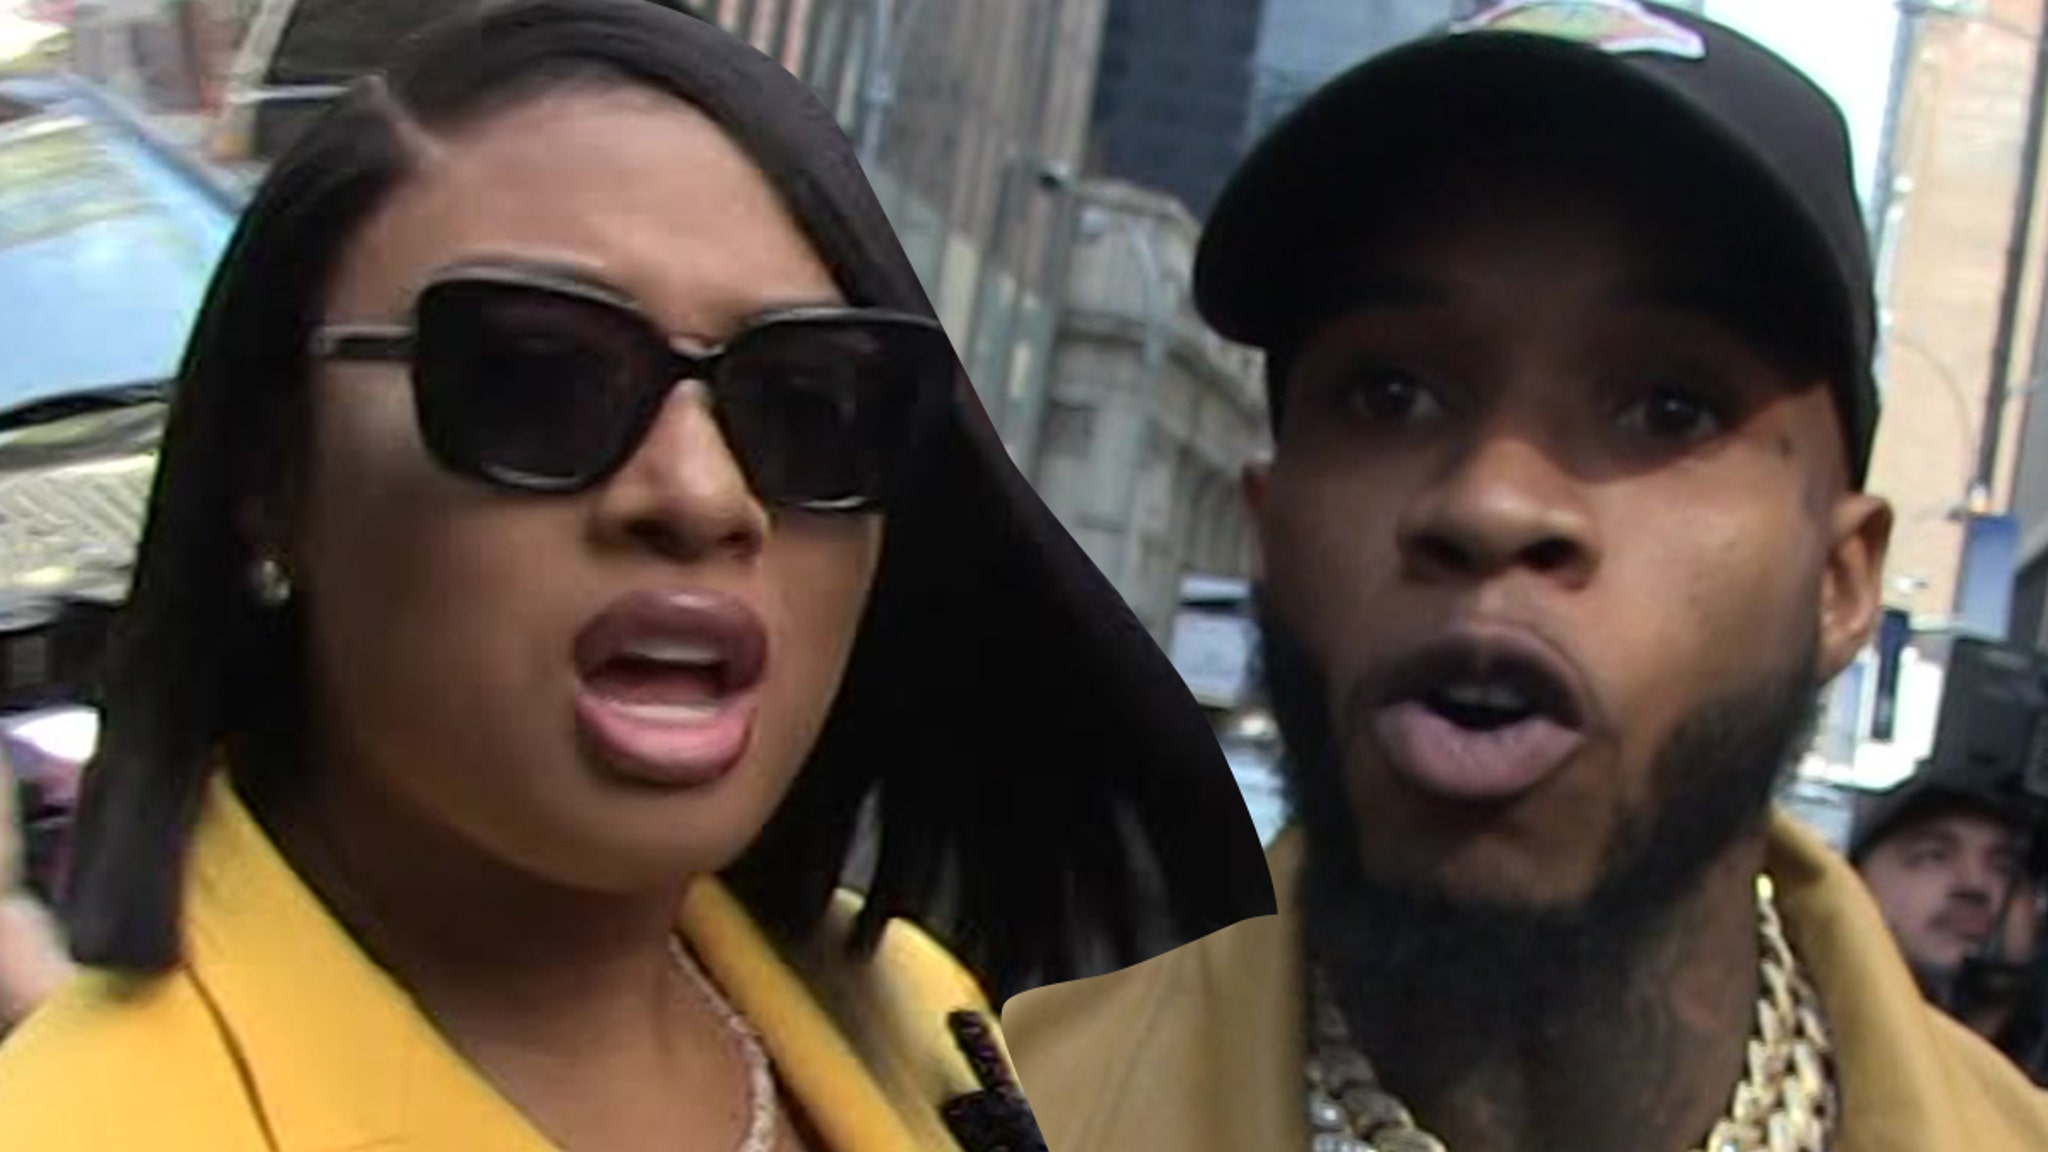 Megan Thee Stallion Tory Lanez Allegedly Shot Her But Witnesses Not Cooperating